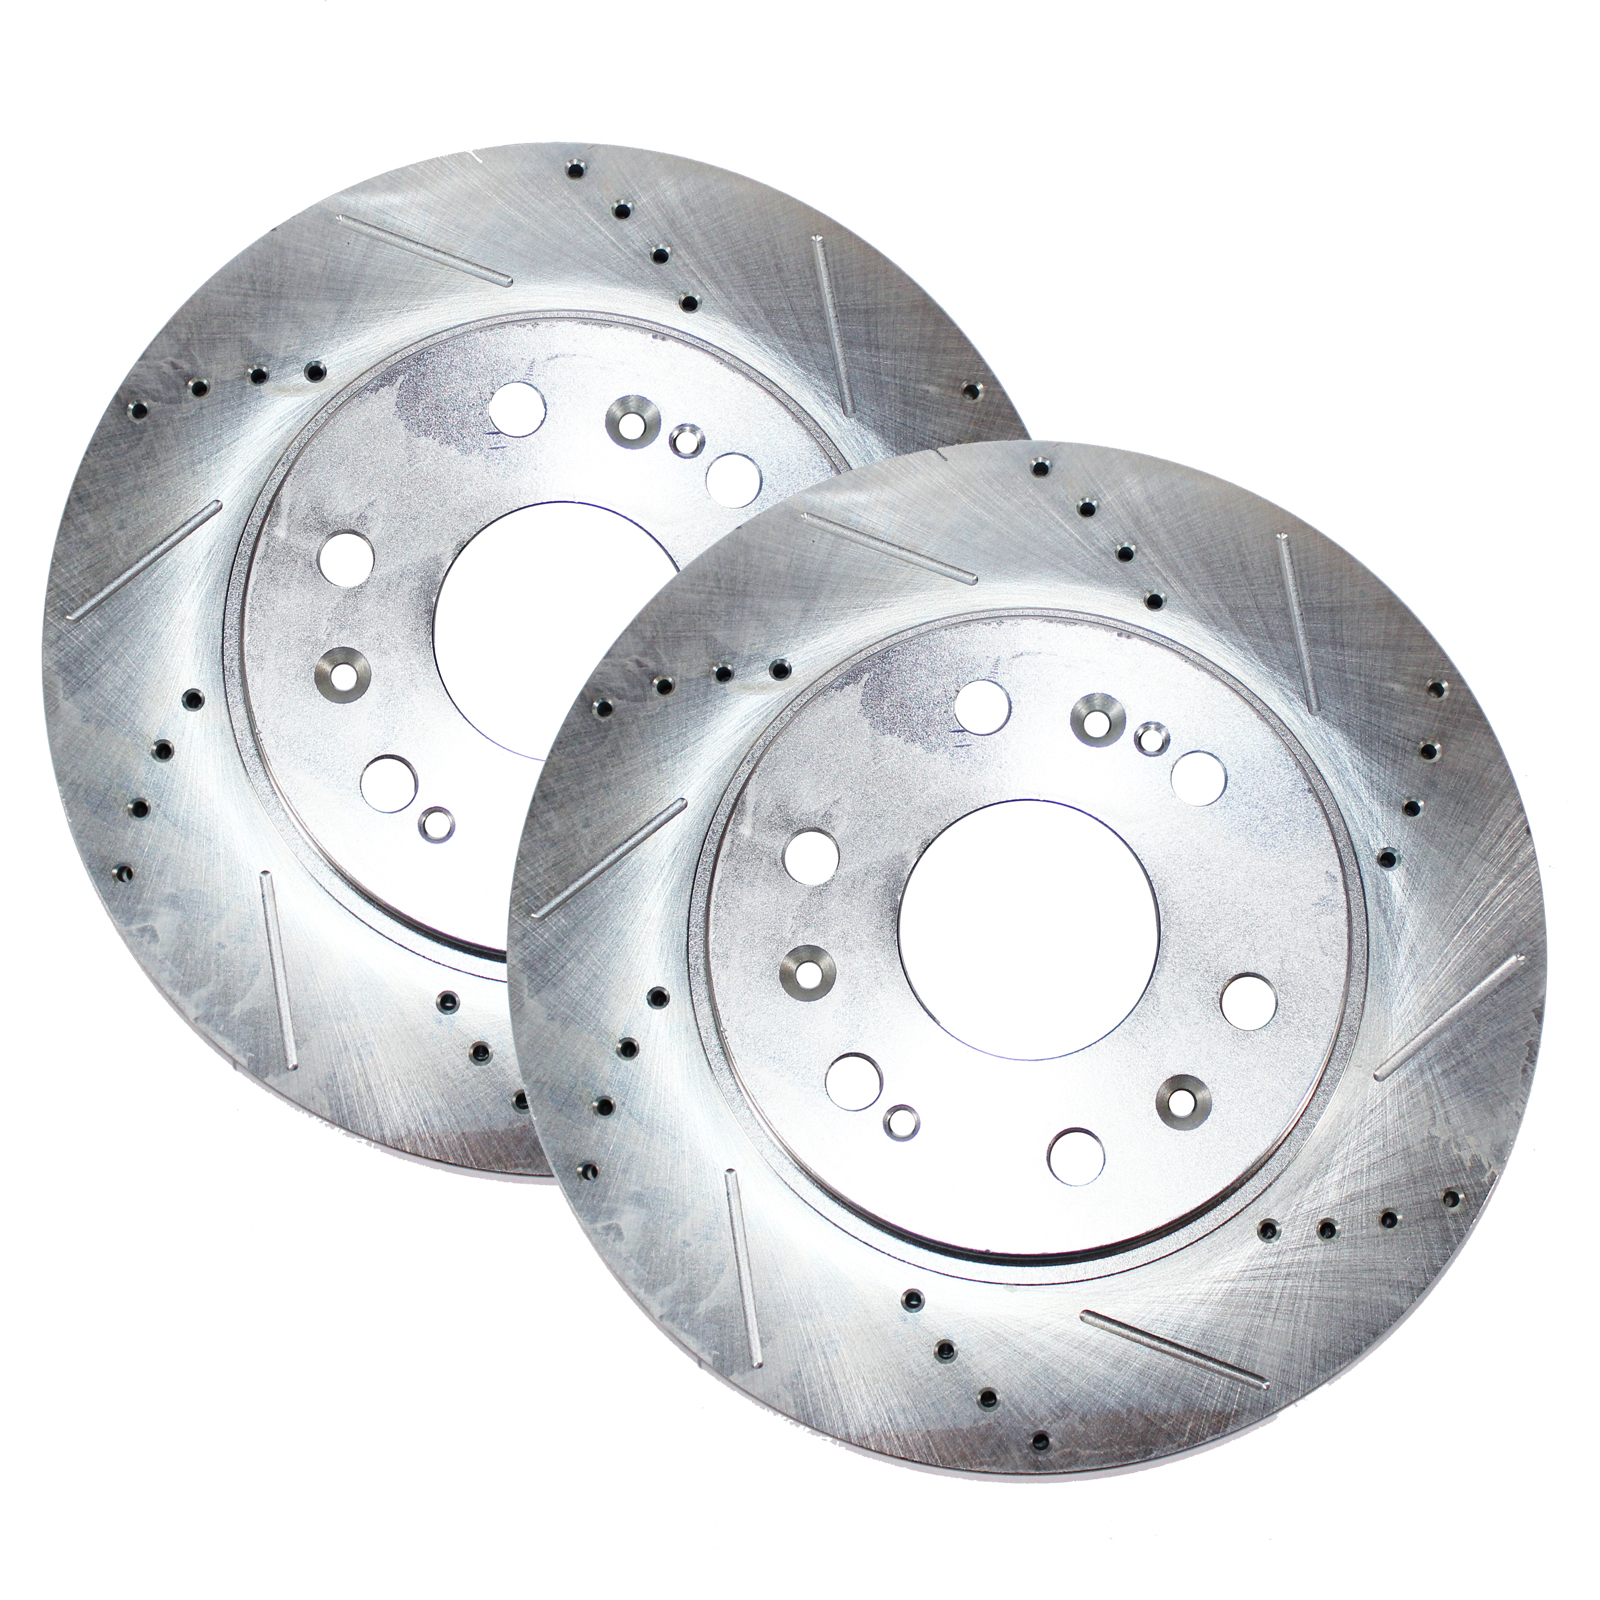 2005 2006 for Chevrolet Avalanche 1500 Front /& Rear Brake Rotors and Pads w//6Lug